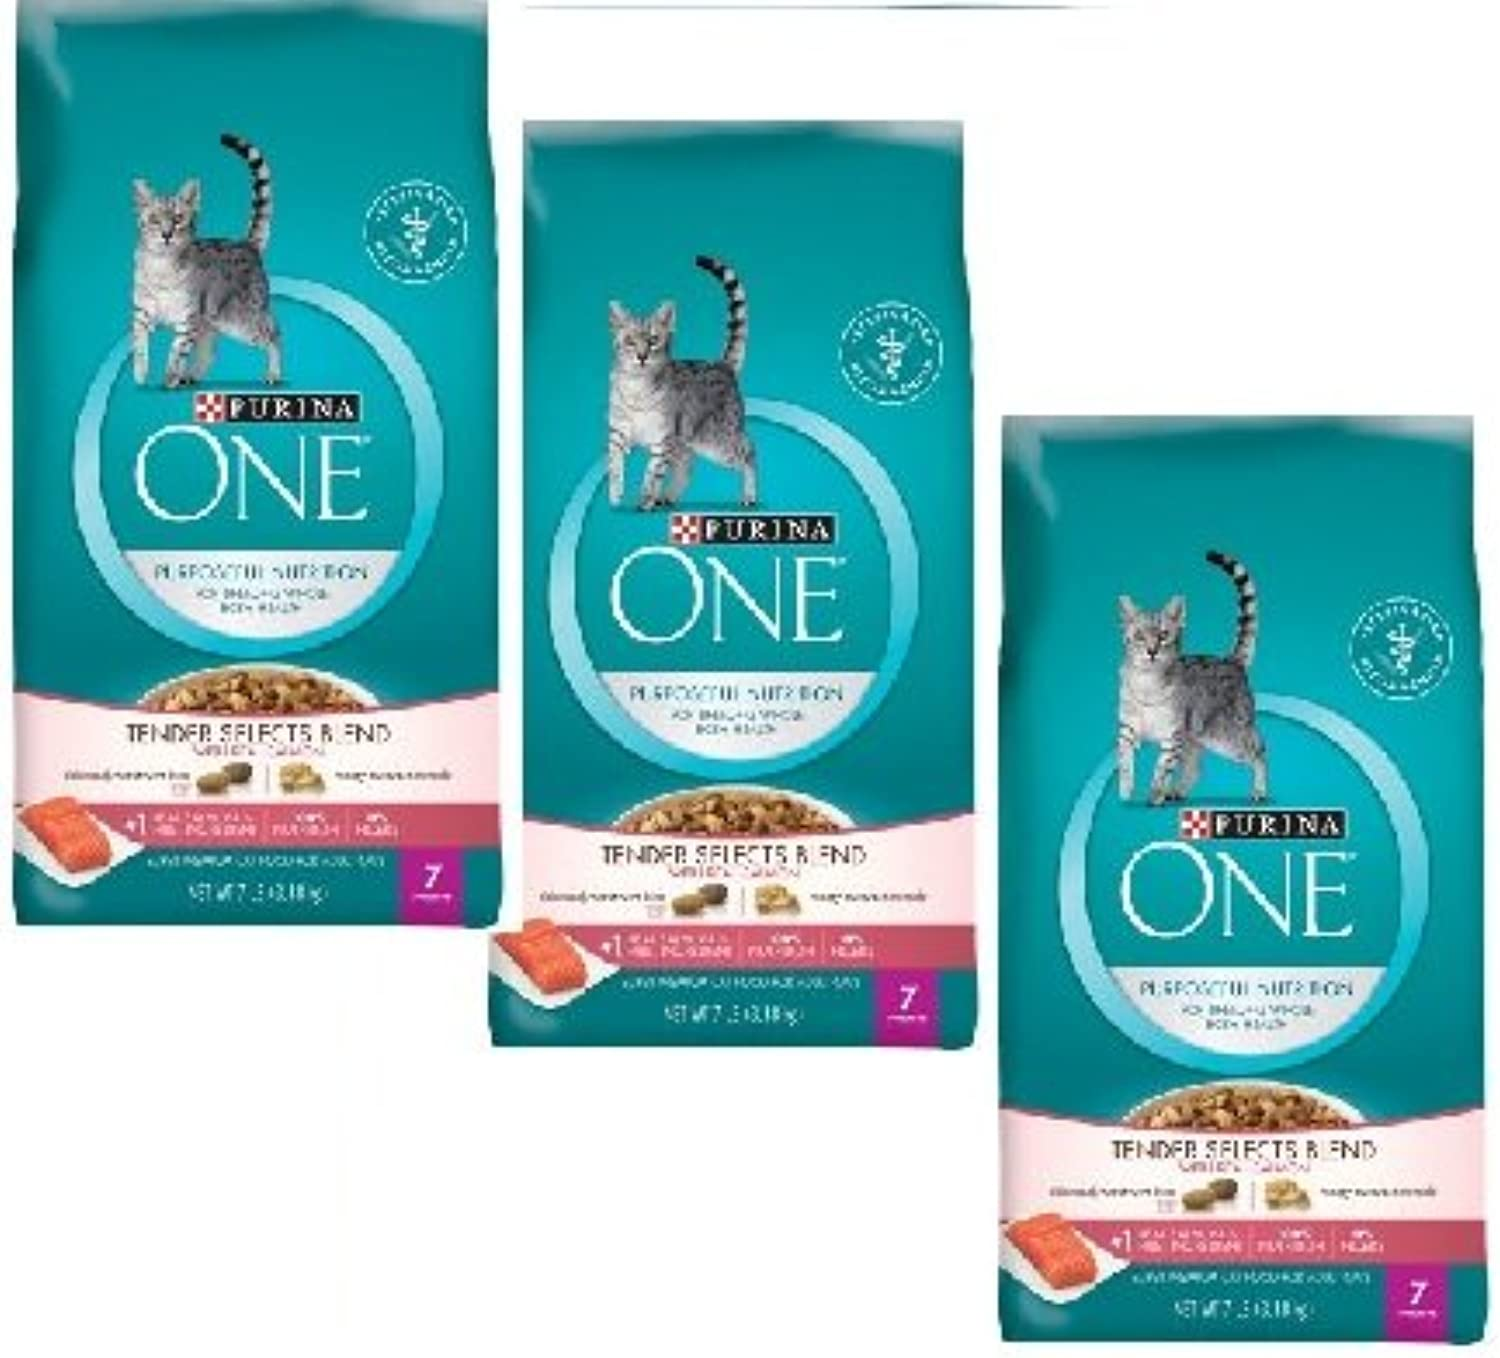 Purina ONE Tender Selects Blend Real Salmon Cat Food 7 lb. Bag (3 Bag)